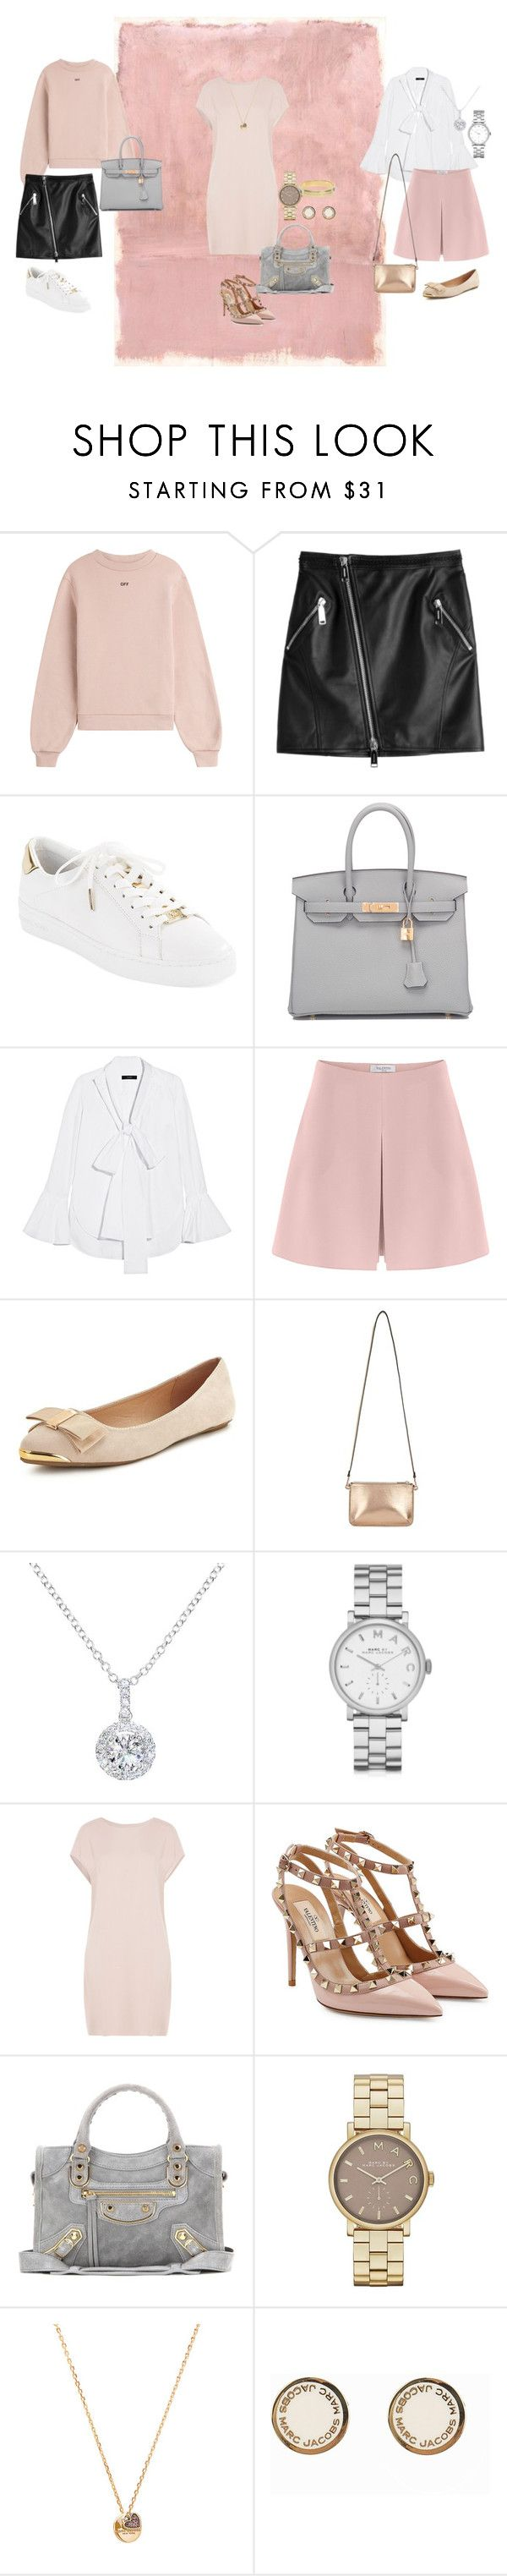 """""""SPRING 2017"""" by yasmingarcia99 on Polyvore featuring Rothko, Off-White, Dsquared2, MICHAEL Michael Kors, Hermès, E L L E R Y, Valentino, Miss Selfridge, EWA and Marc by Marc Jacobs"""